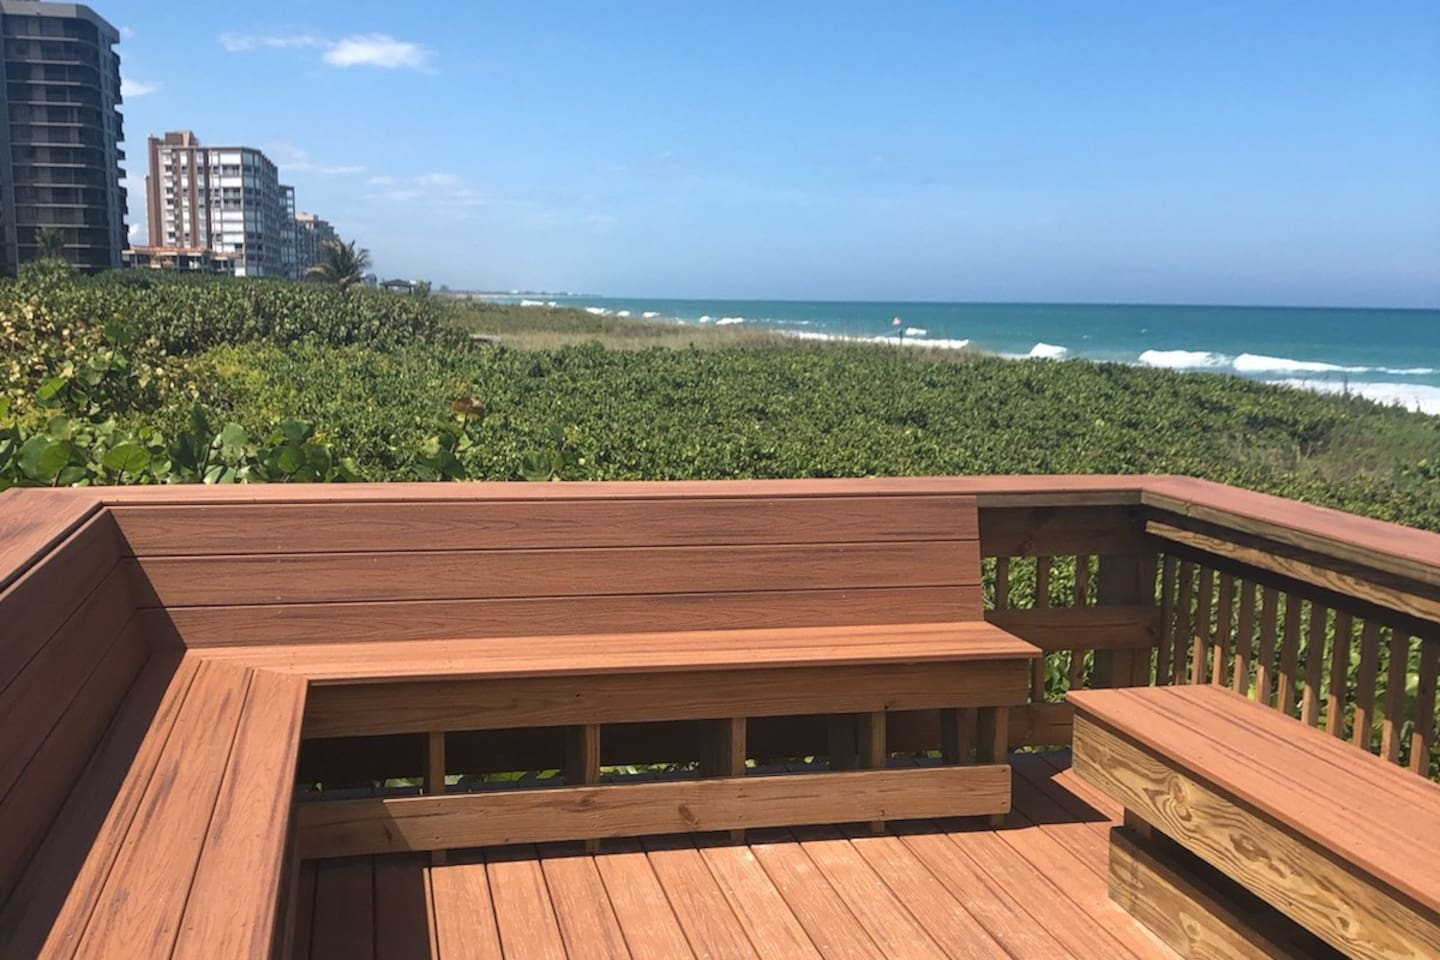 Sit on the deck and and enjoy  a refreshing cocktail while overlooking the ocean.